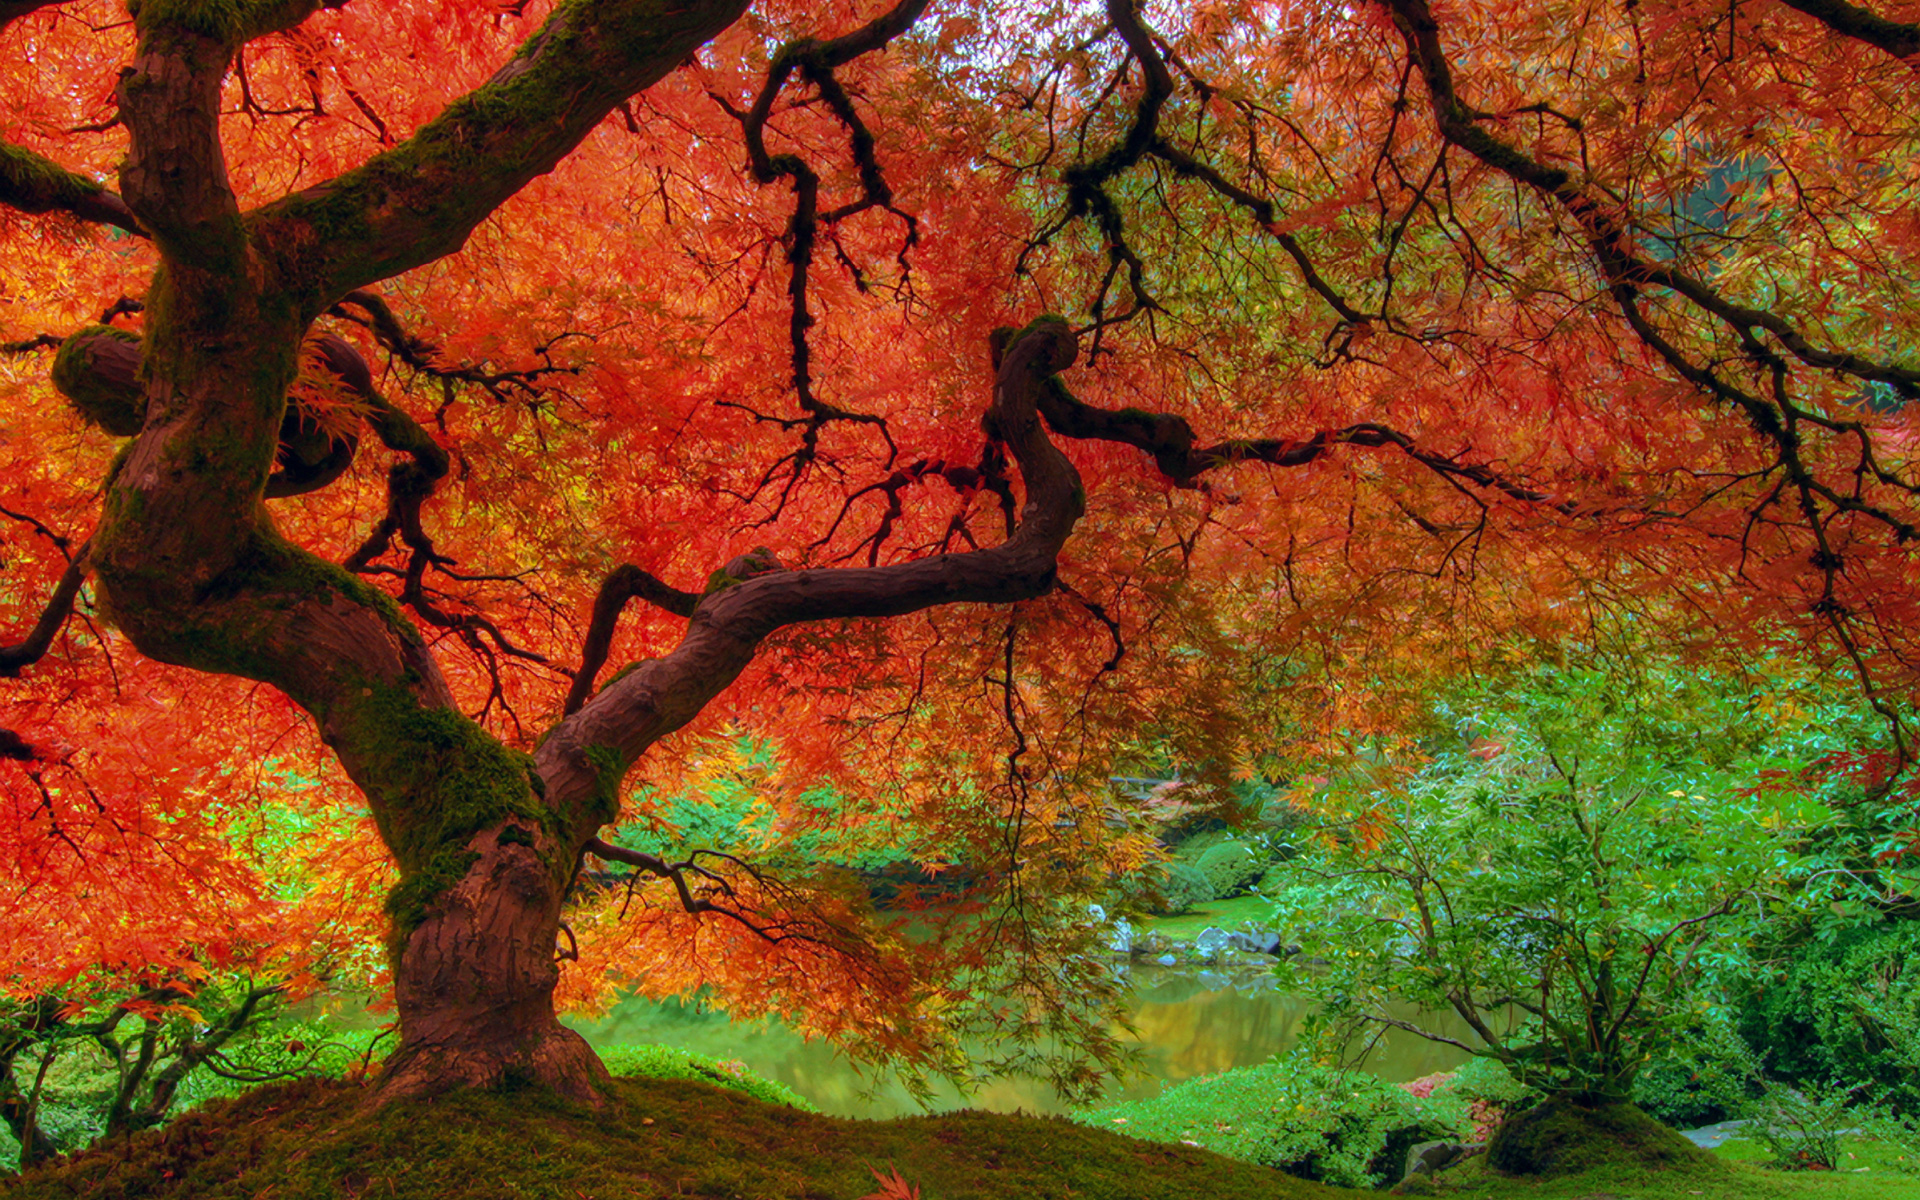 Fall Colors Wallpaper Images & Pictures - Becuo